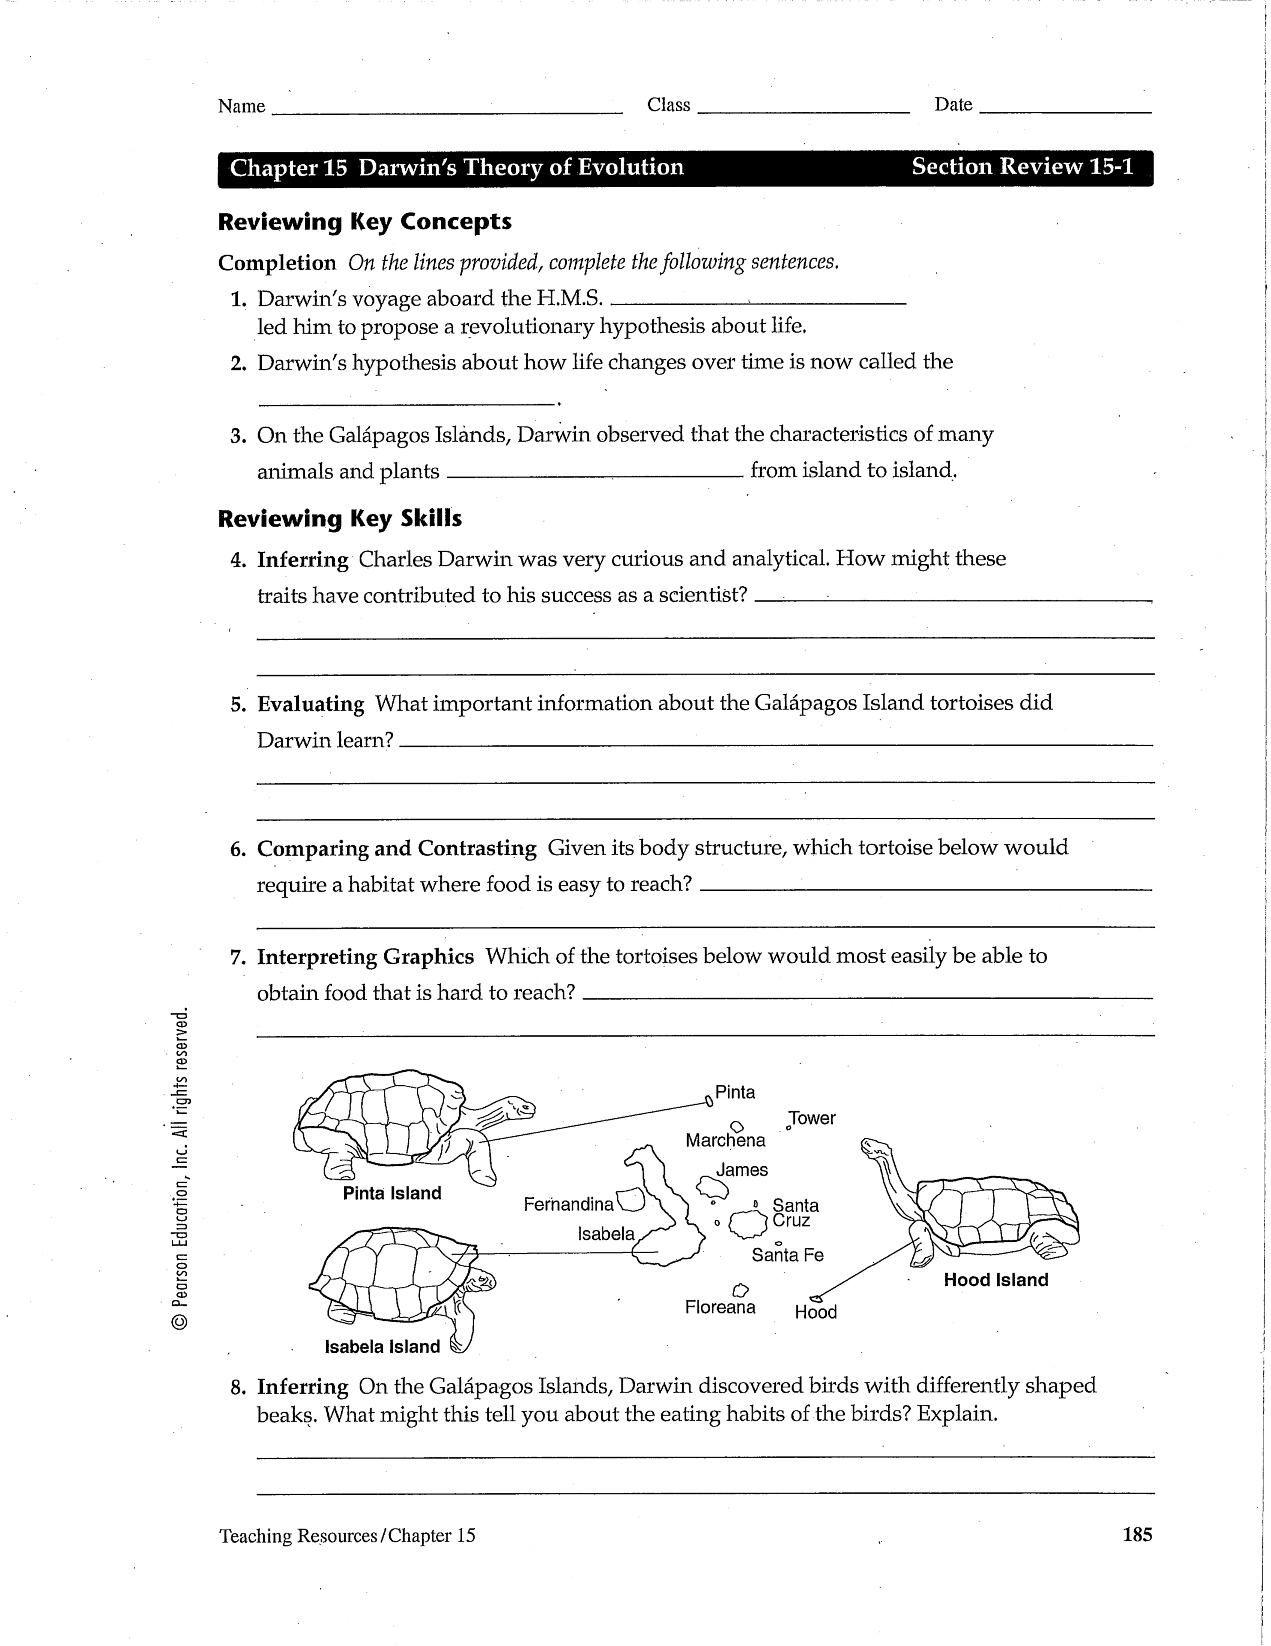 Worksheets Evidence For Evolution Worksheet darwins theory of evolution worksheet chapter 15 reviewing key concepts